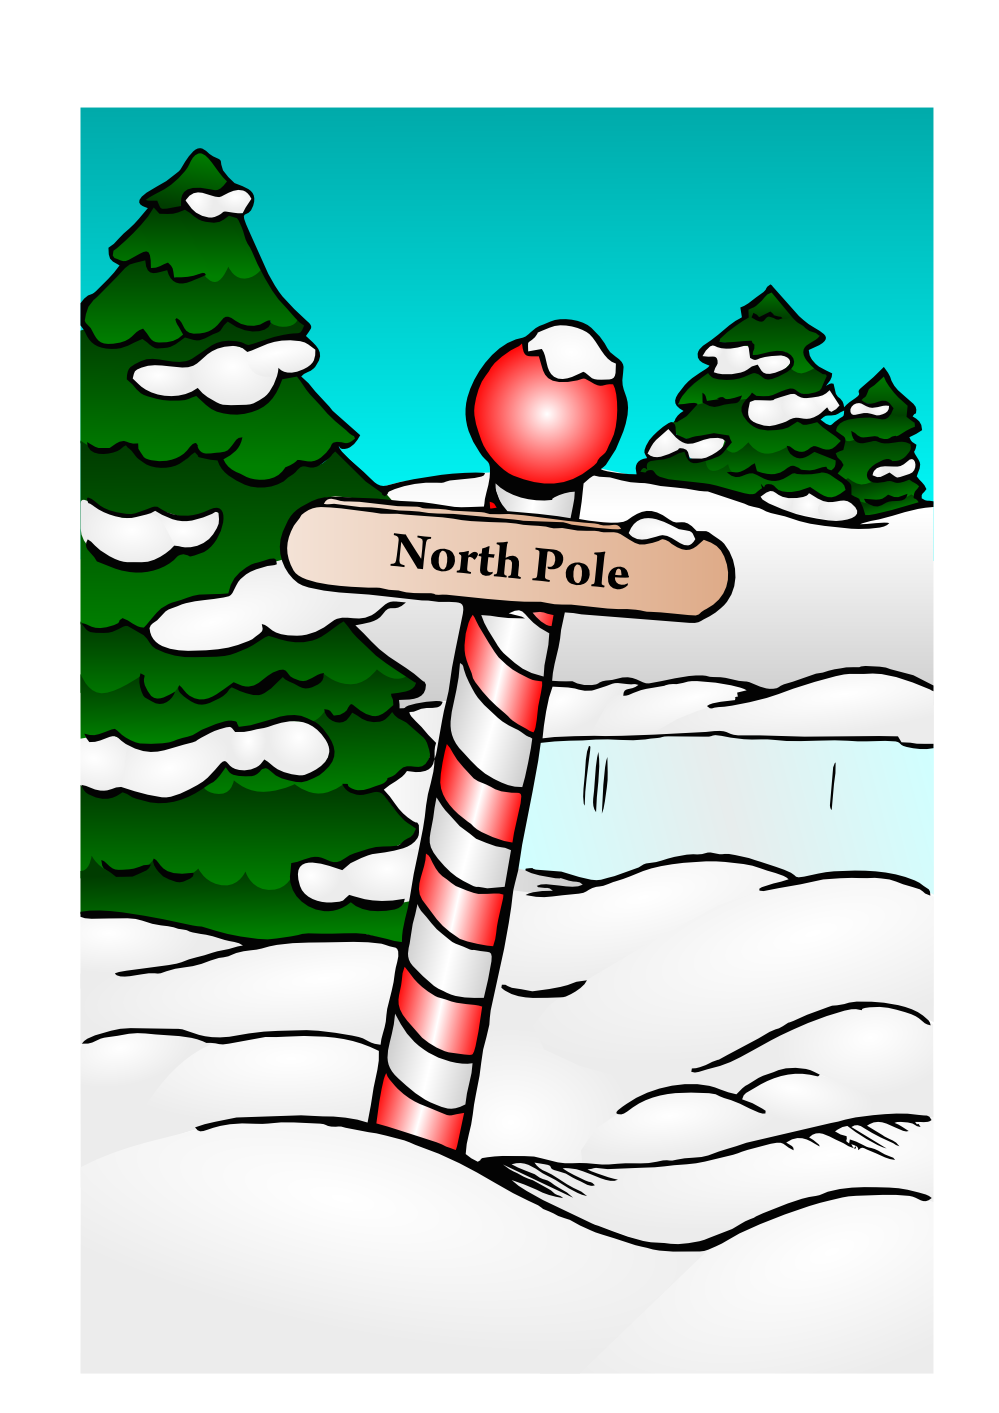 North Pole Christmas Xmas Holiday Coloring Book Colouring Coloring